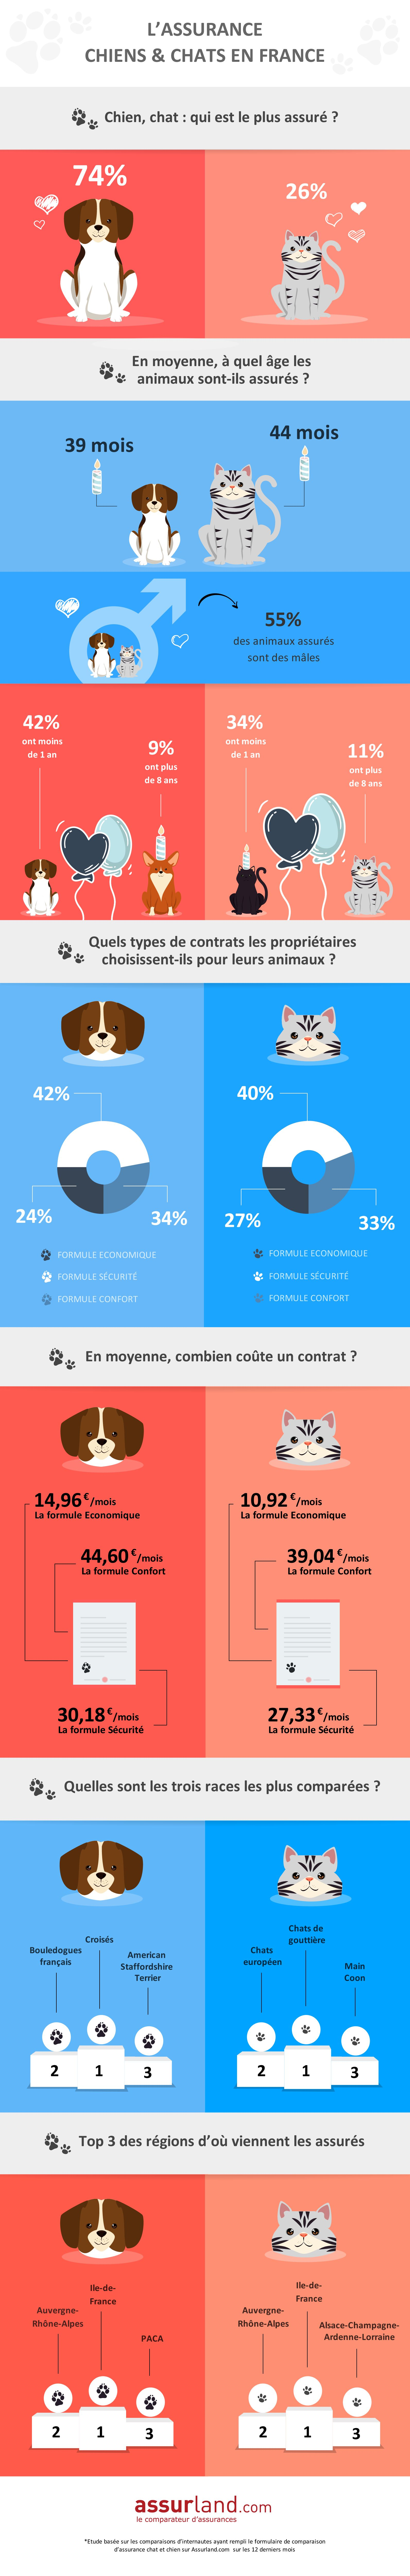 Infographie-assurance-chien-chat-France